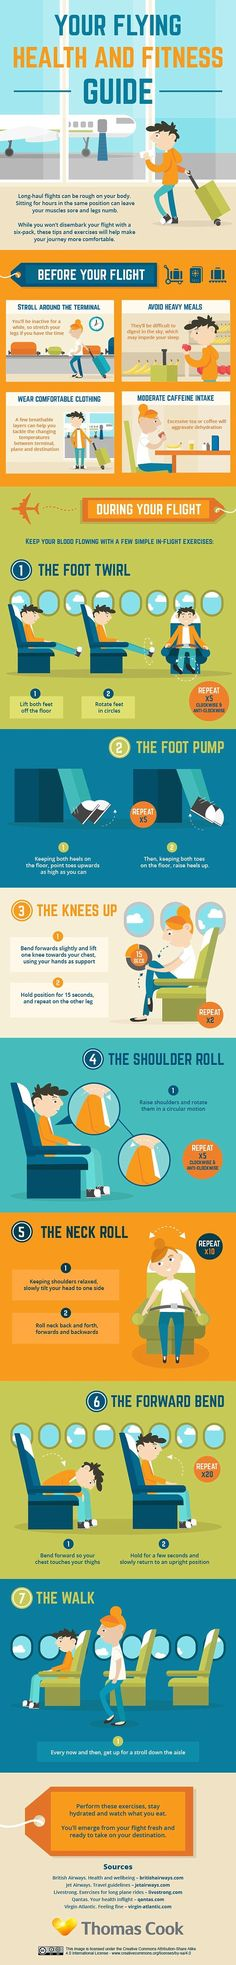 Infographic reveals how to stay healthy on a long-haul flight | Daily Mail Online